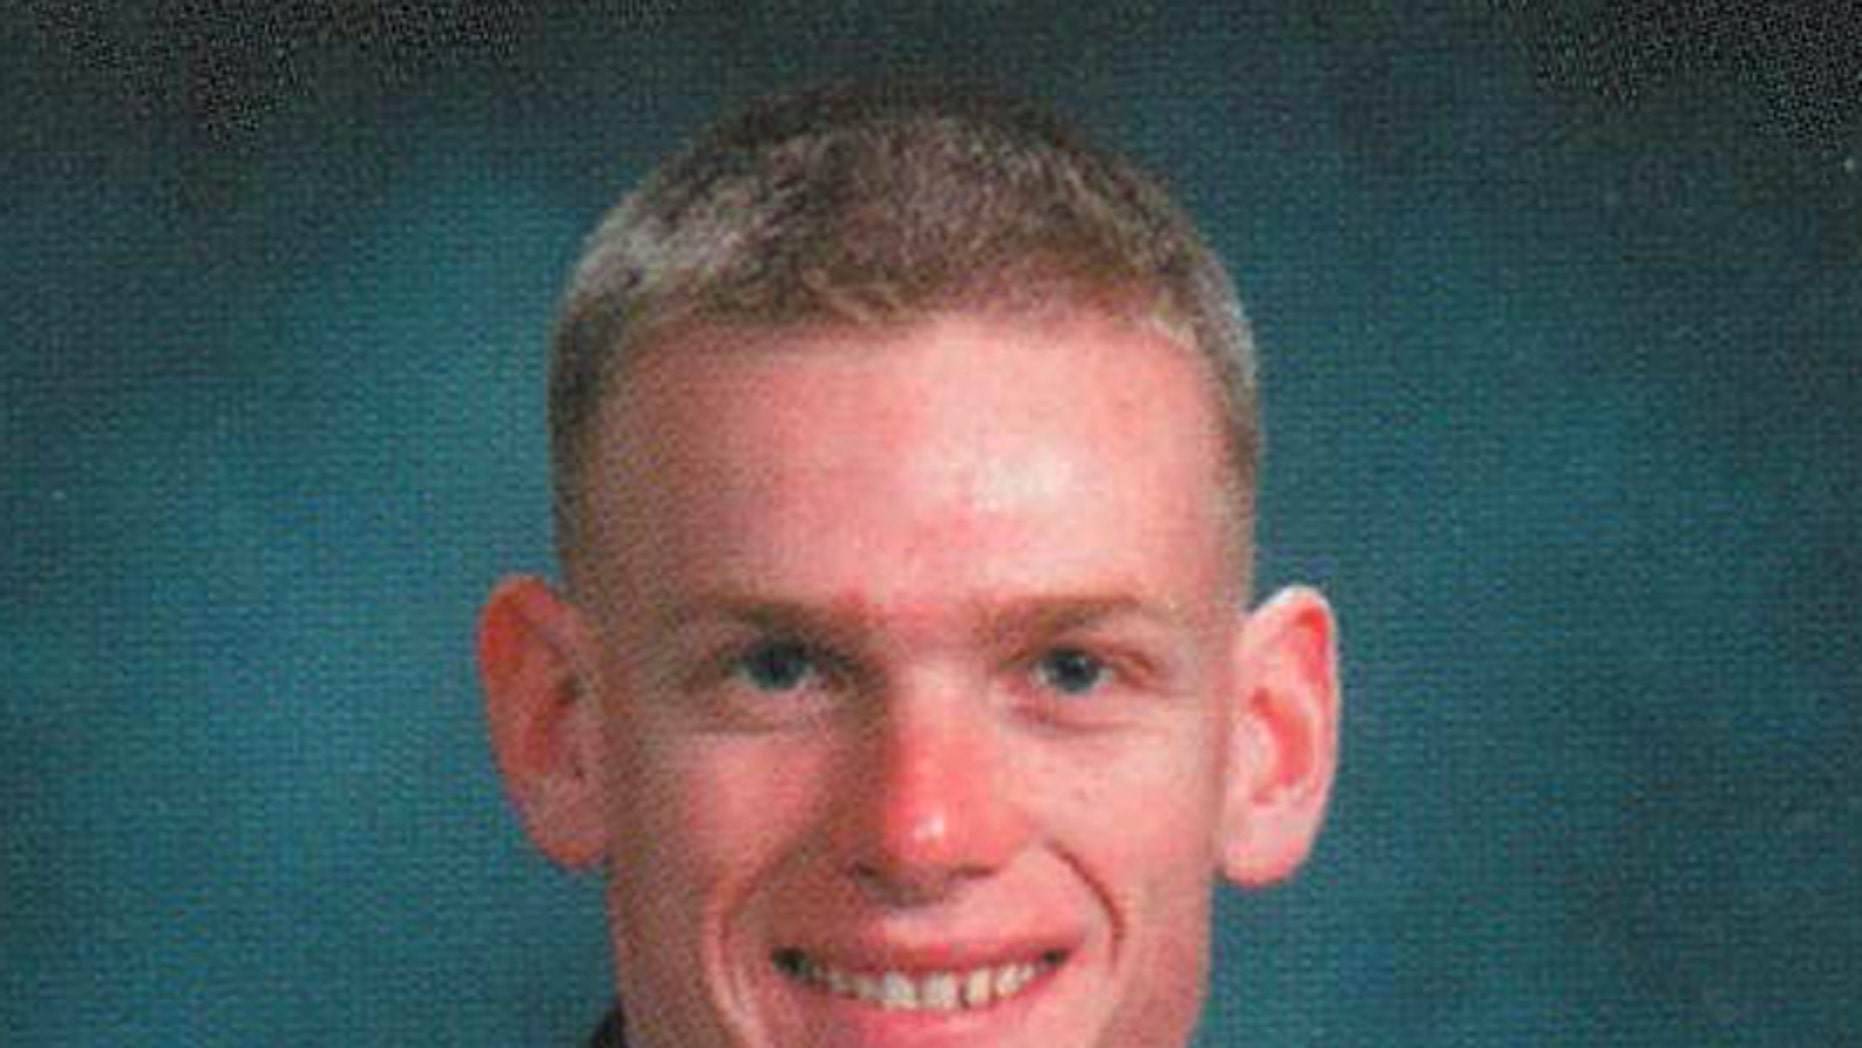 This 2003 photo released by the U.S. Air Force Academy shows Capt. Lucas Gruenther. The U.S. Air Force has identified Gruenther as the pilot of an F-16 fighter jet that went missing Monday, Jan. 28, 2013 on a training mission over the Adriatic Sea. (AP Photo/U.S. Air Force Academy)